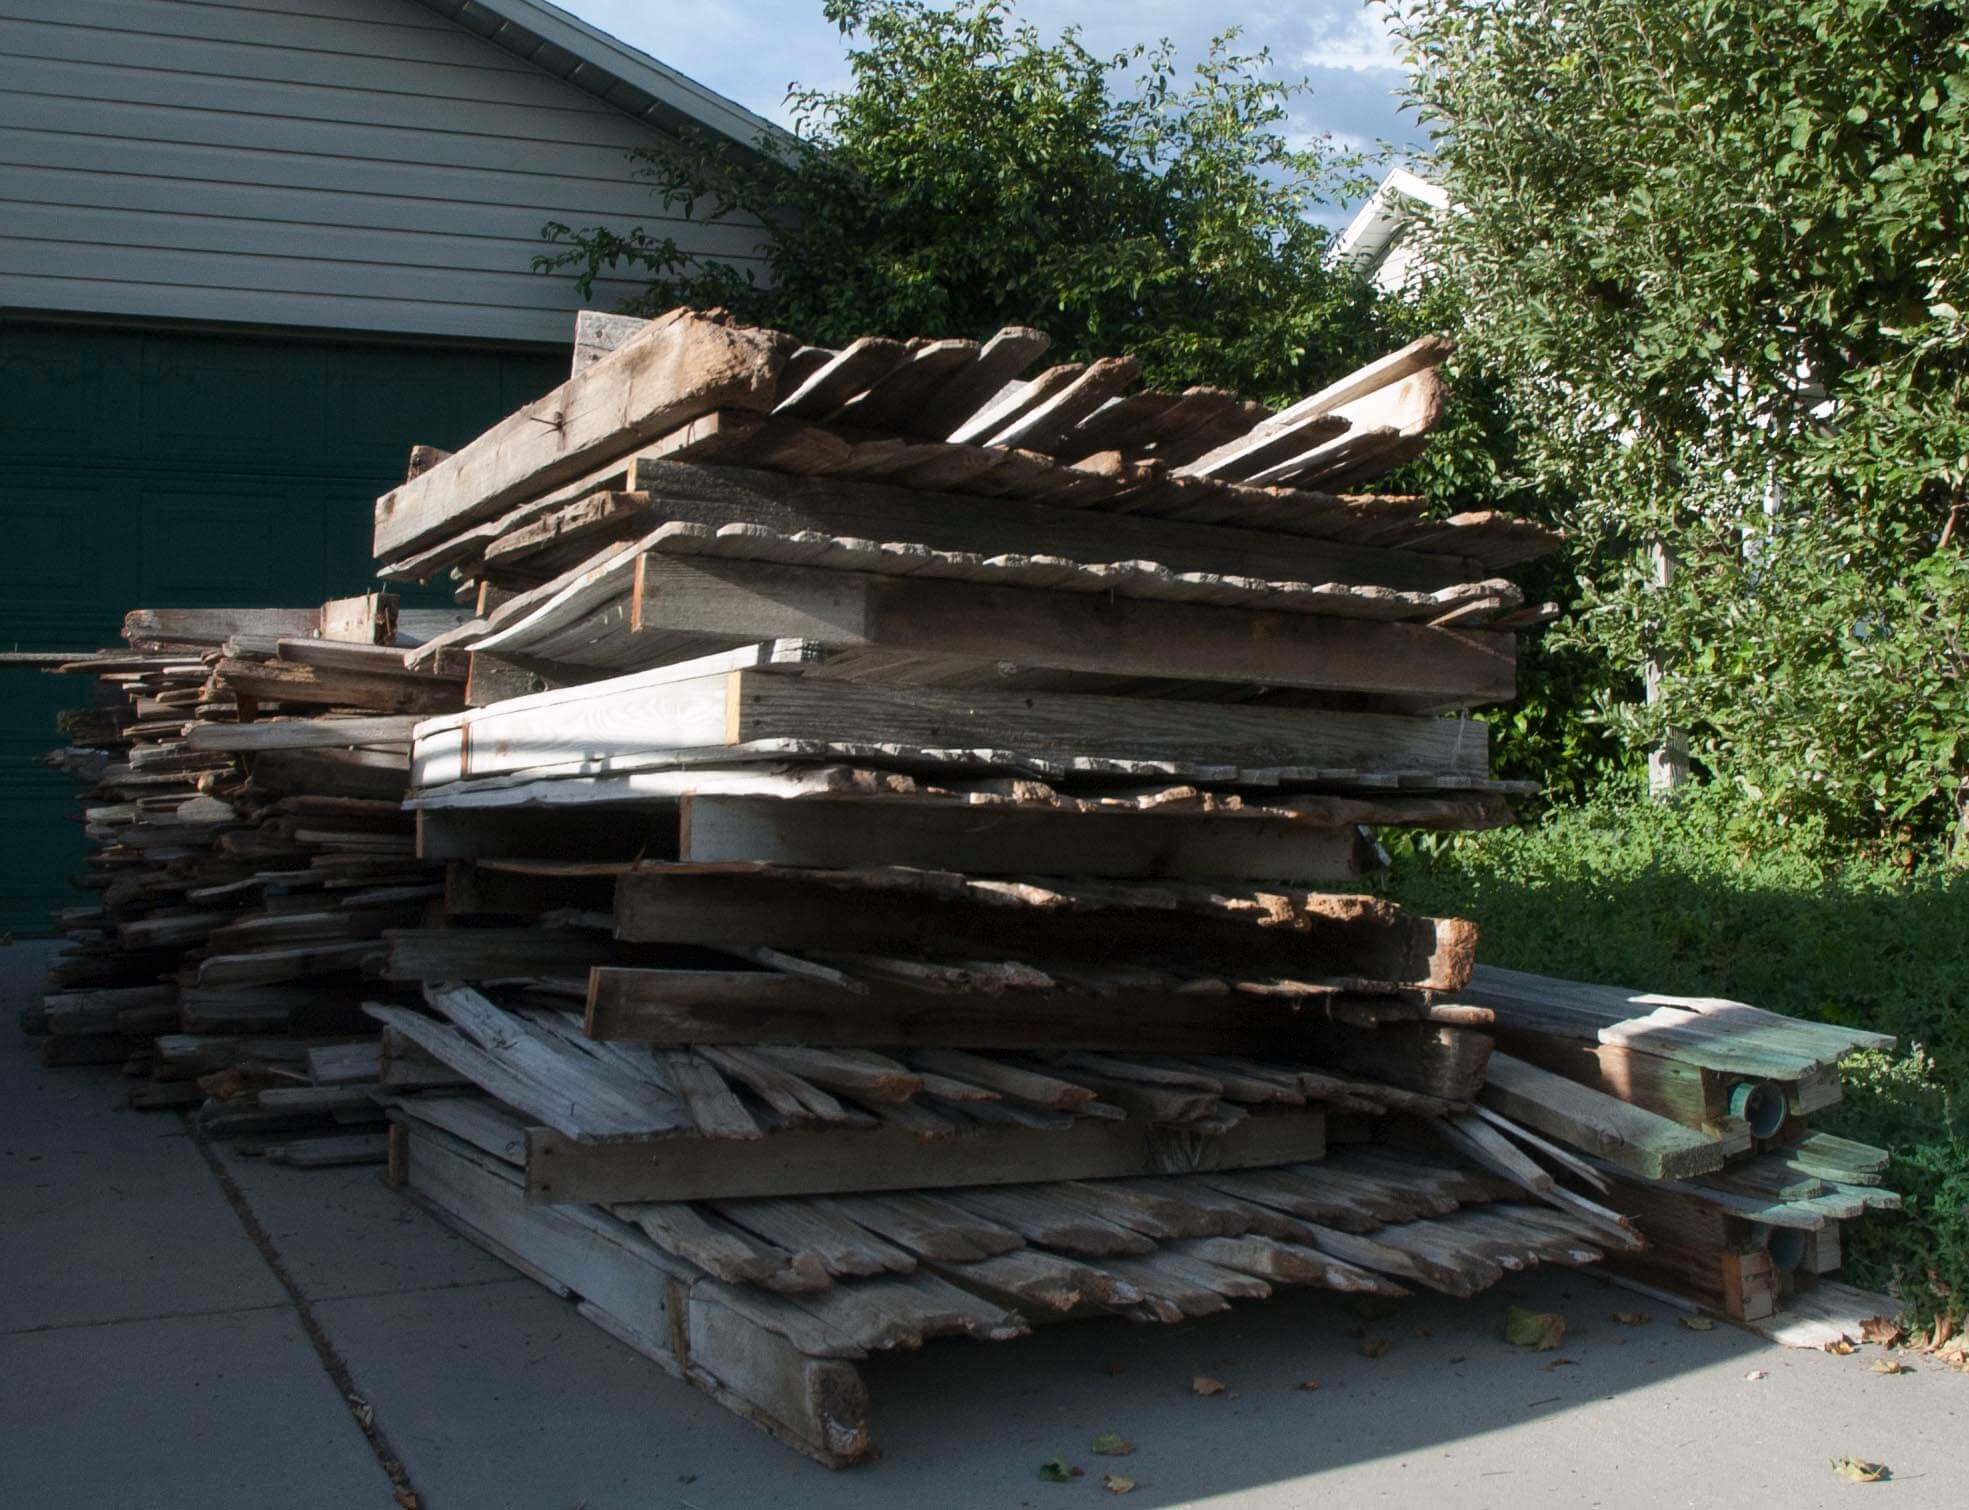 Strictly speaking, the first steps in constructing the barn involved dismantling these fence section...